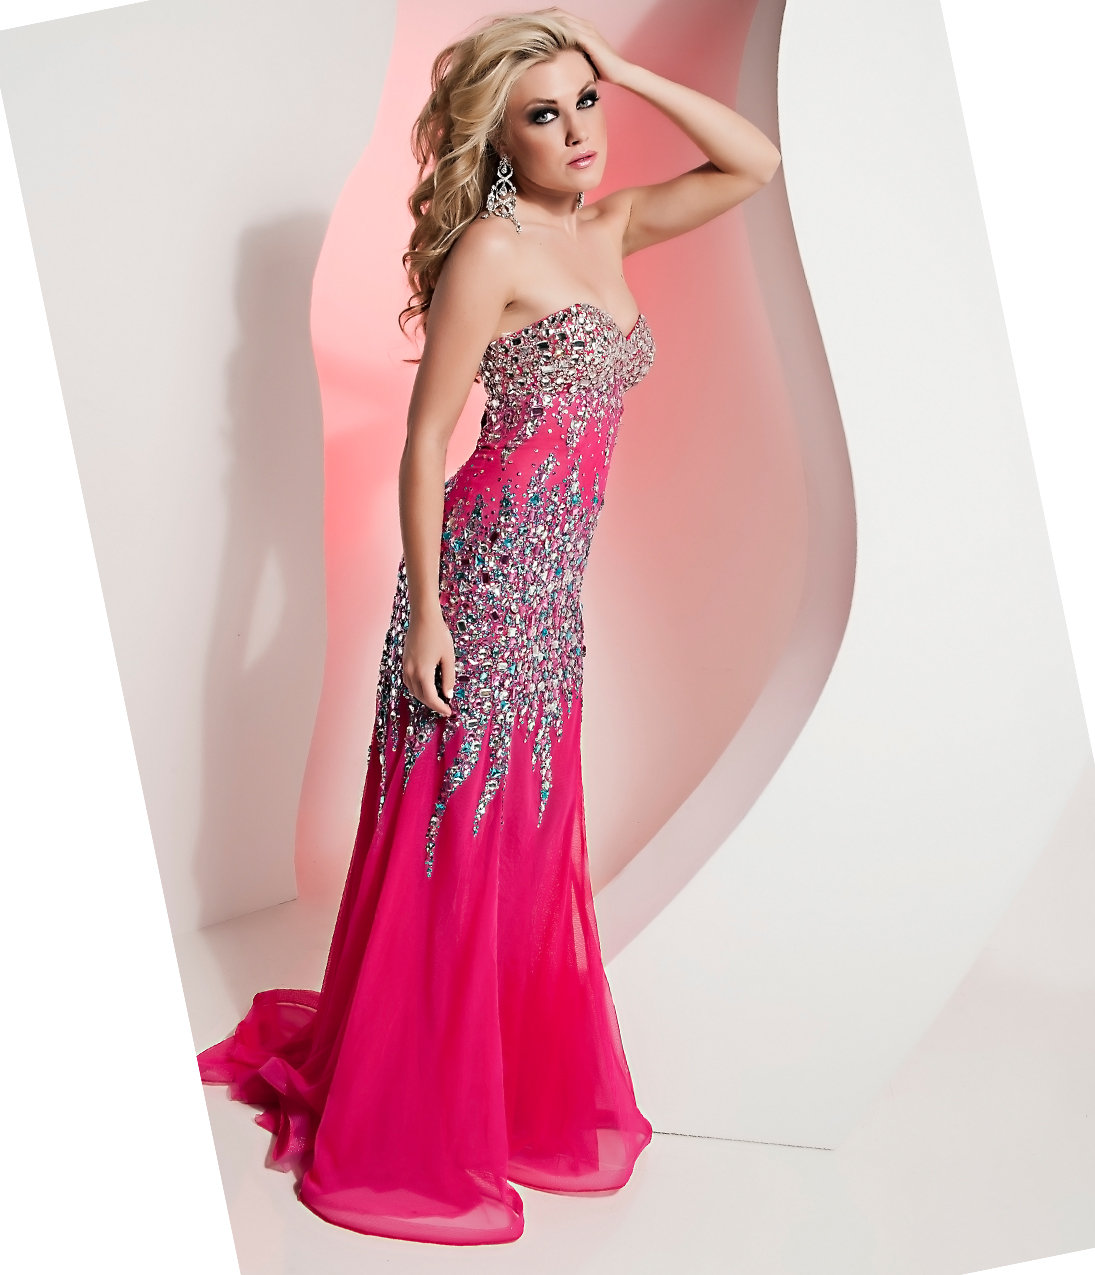 The Prettiest Prom Dress In The World | www.imgkid.com ...